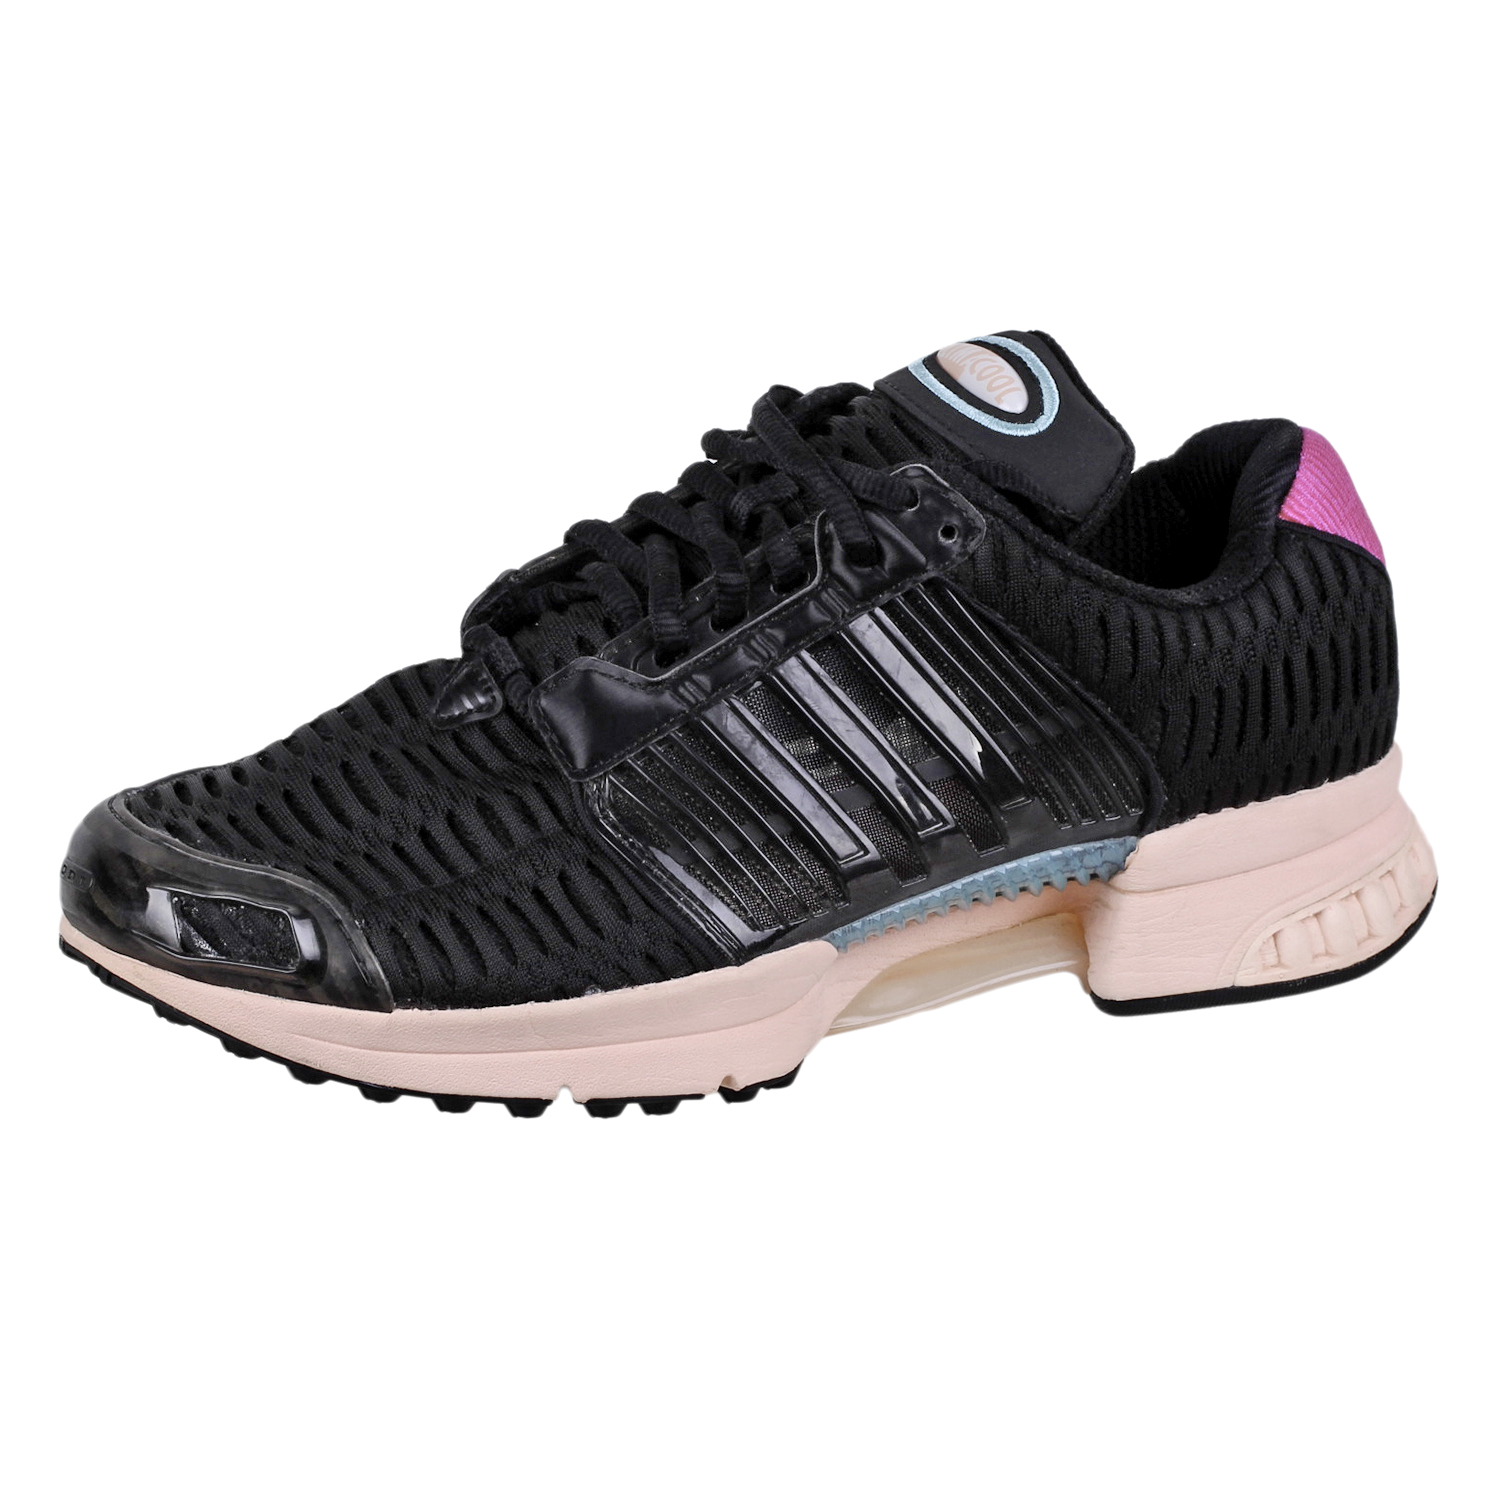 02e9baf022918 Details about Adidas Women's Climacool 1 Running Shoes BB5303 Black 8.5